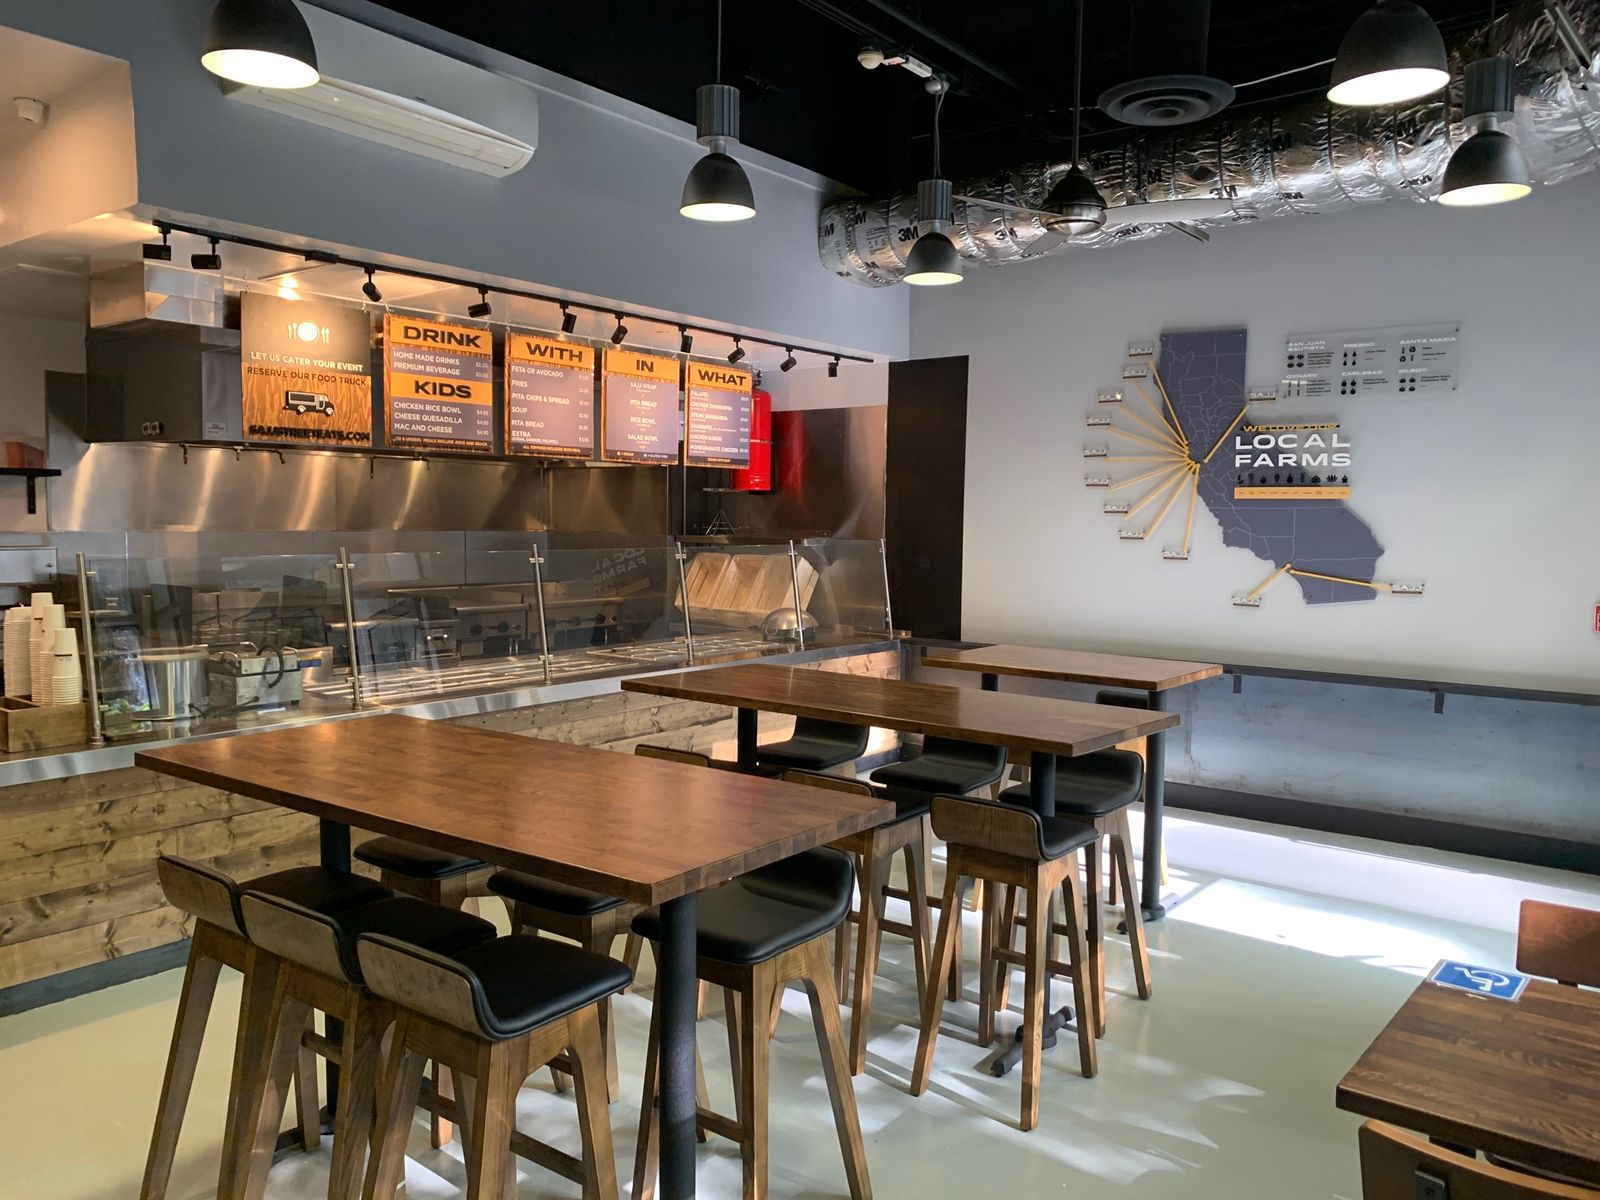 SAJJ Mediterranean will make its Los Angeles debut in downtown at 630 West 6th Street #110B with a Grand Opening celebration on Thursday, February 27. The concept has plans to continue expanding the SAJJ brand in Southern California with both brick-and-mortar and nontraditional formats.